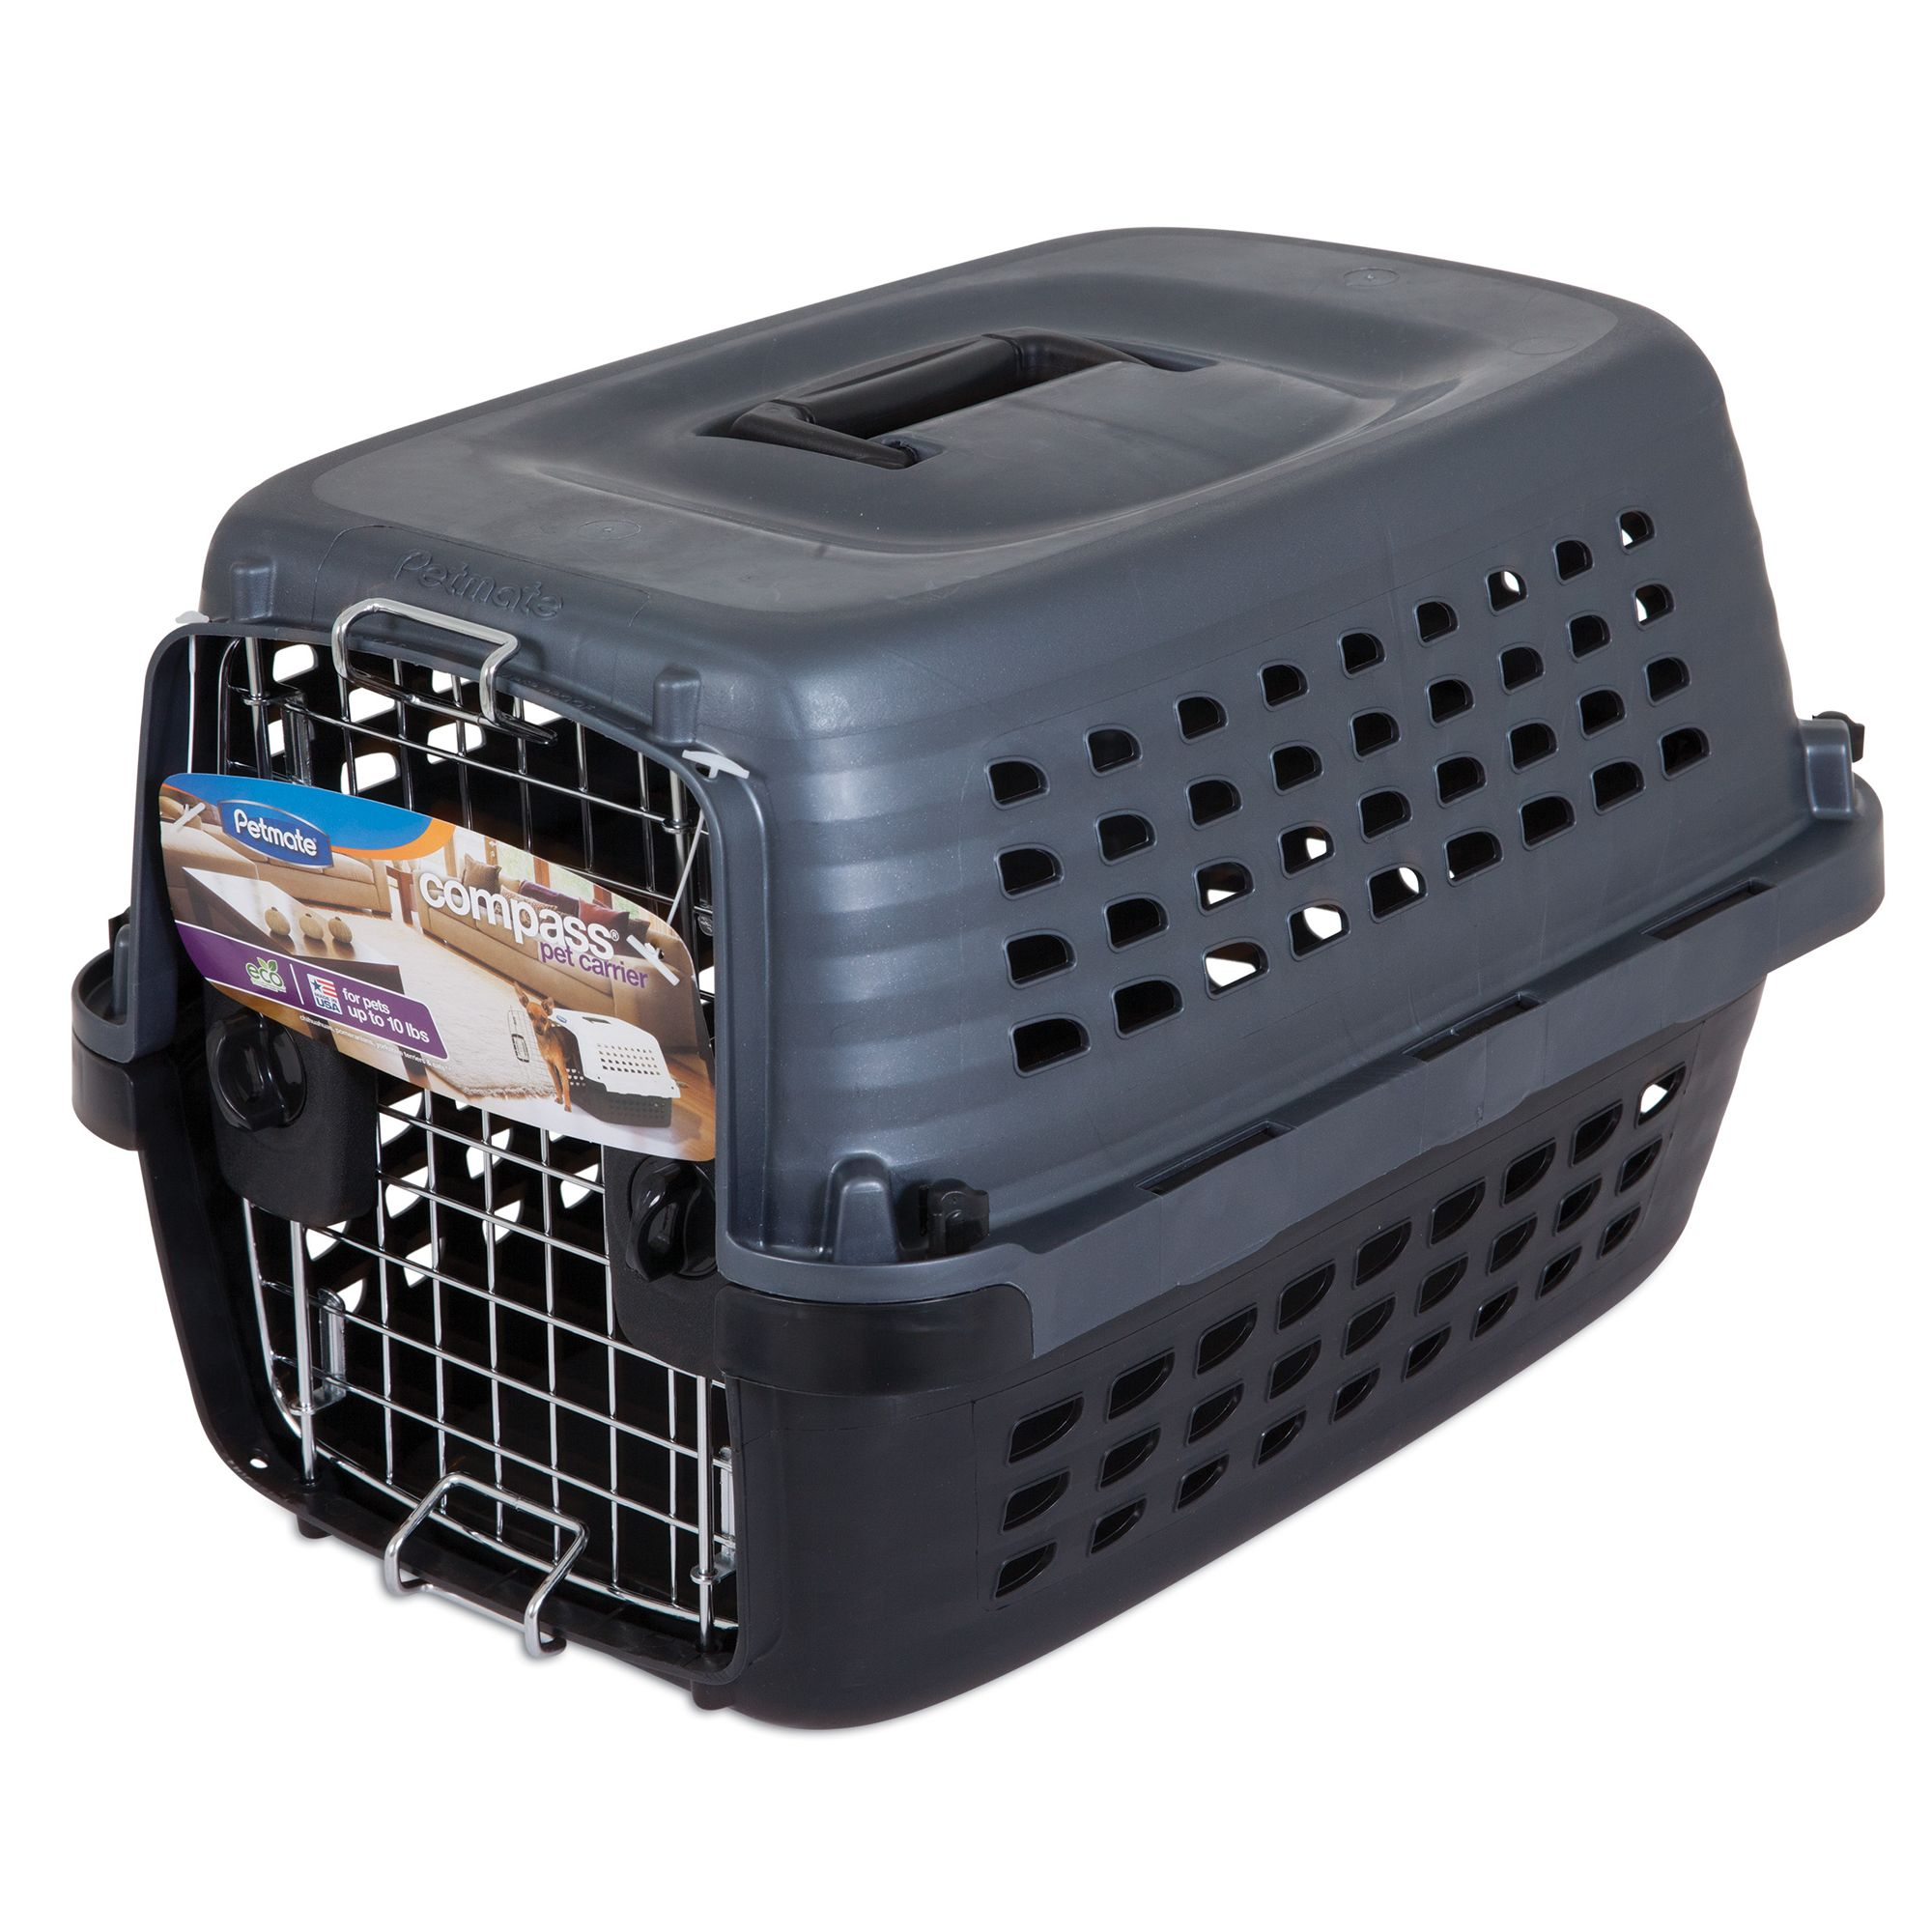 "Petmate® Compass Dog Carrier size: 19""L x 12.7""W x 11.5"""